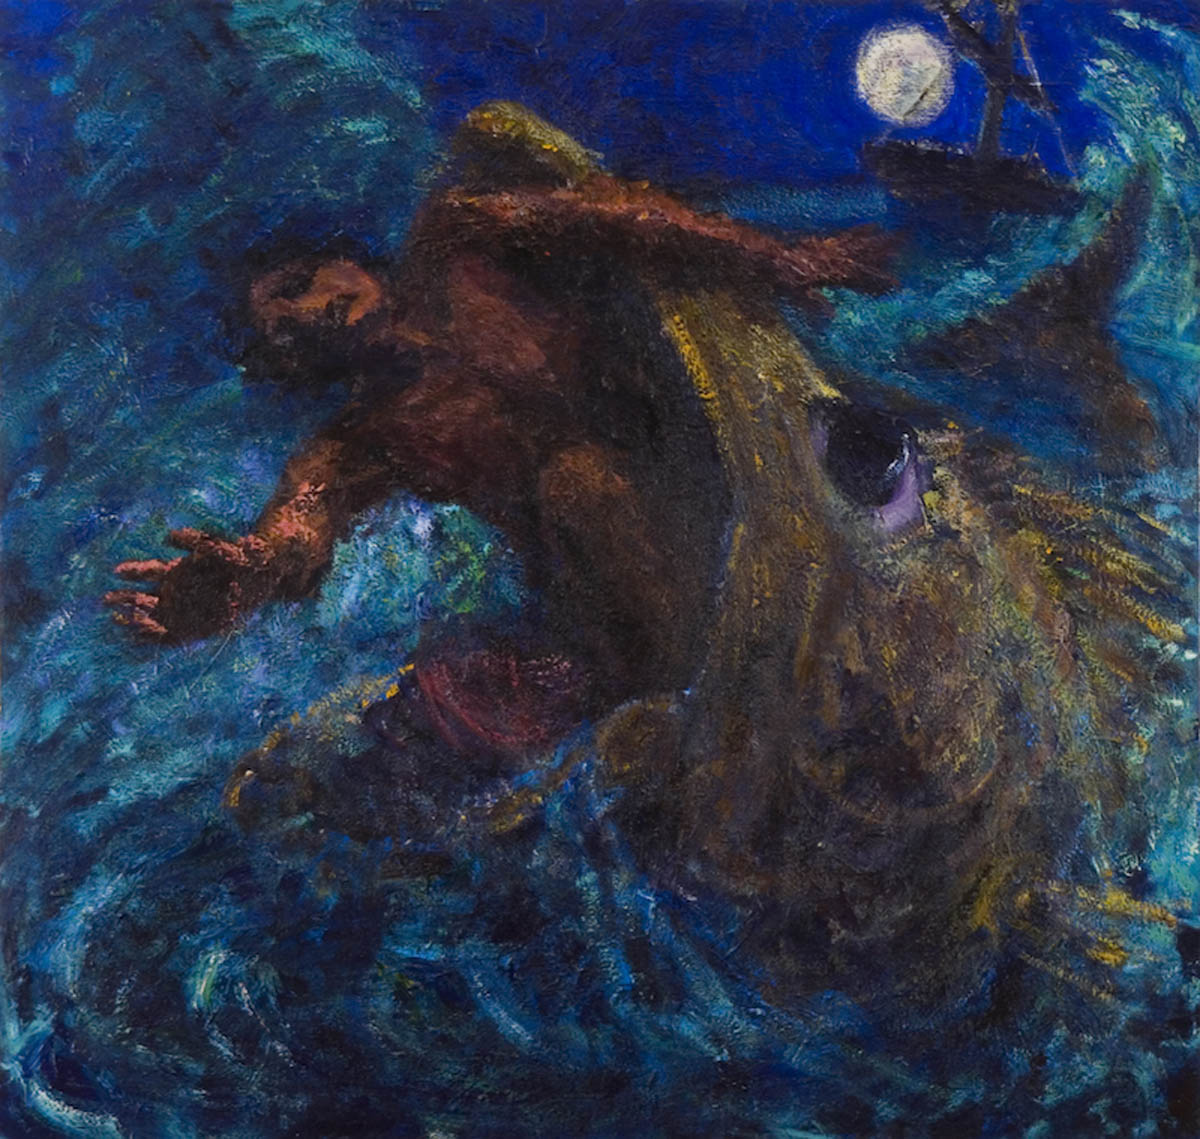 Jonah and the Whale (2005), oil on canvas (64 x 64) by Simon Carr